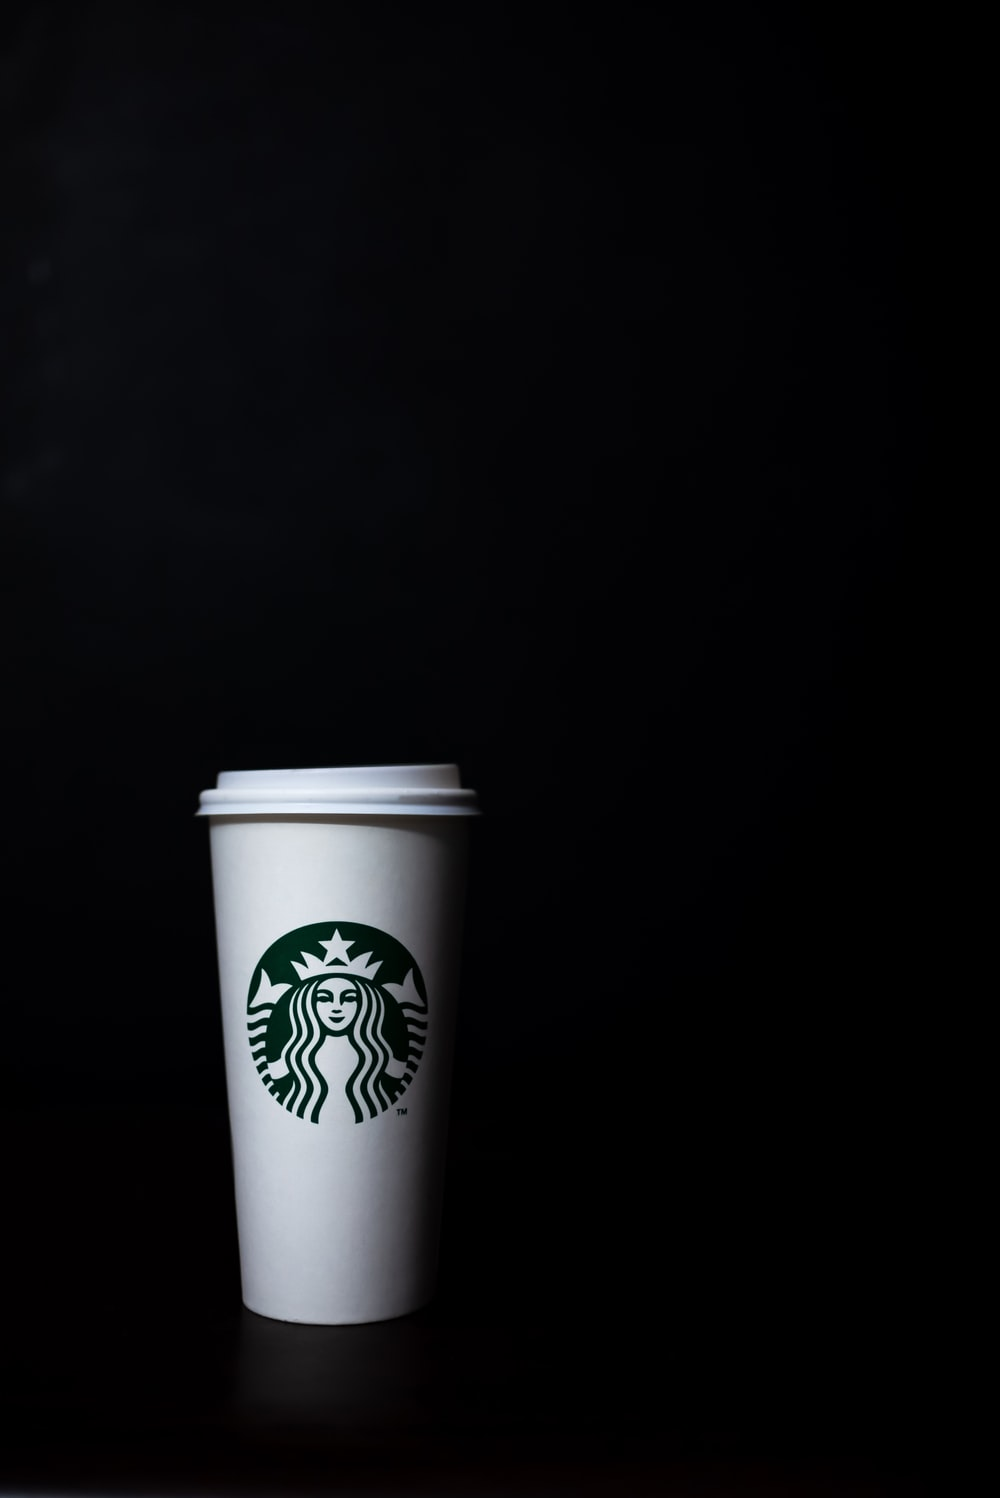 Starbuck's disposable cup